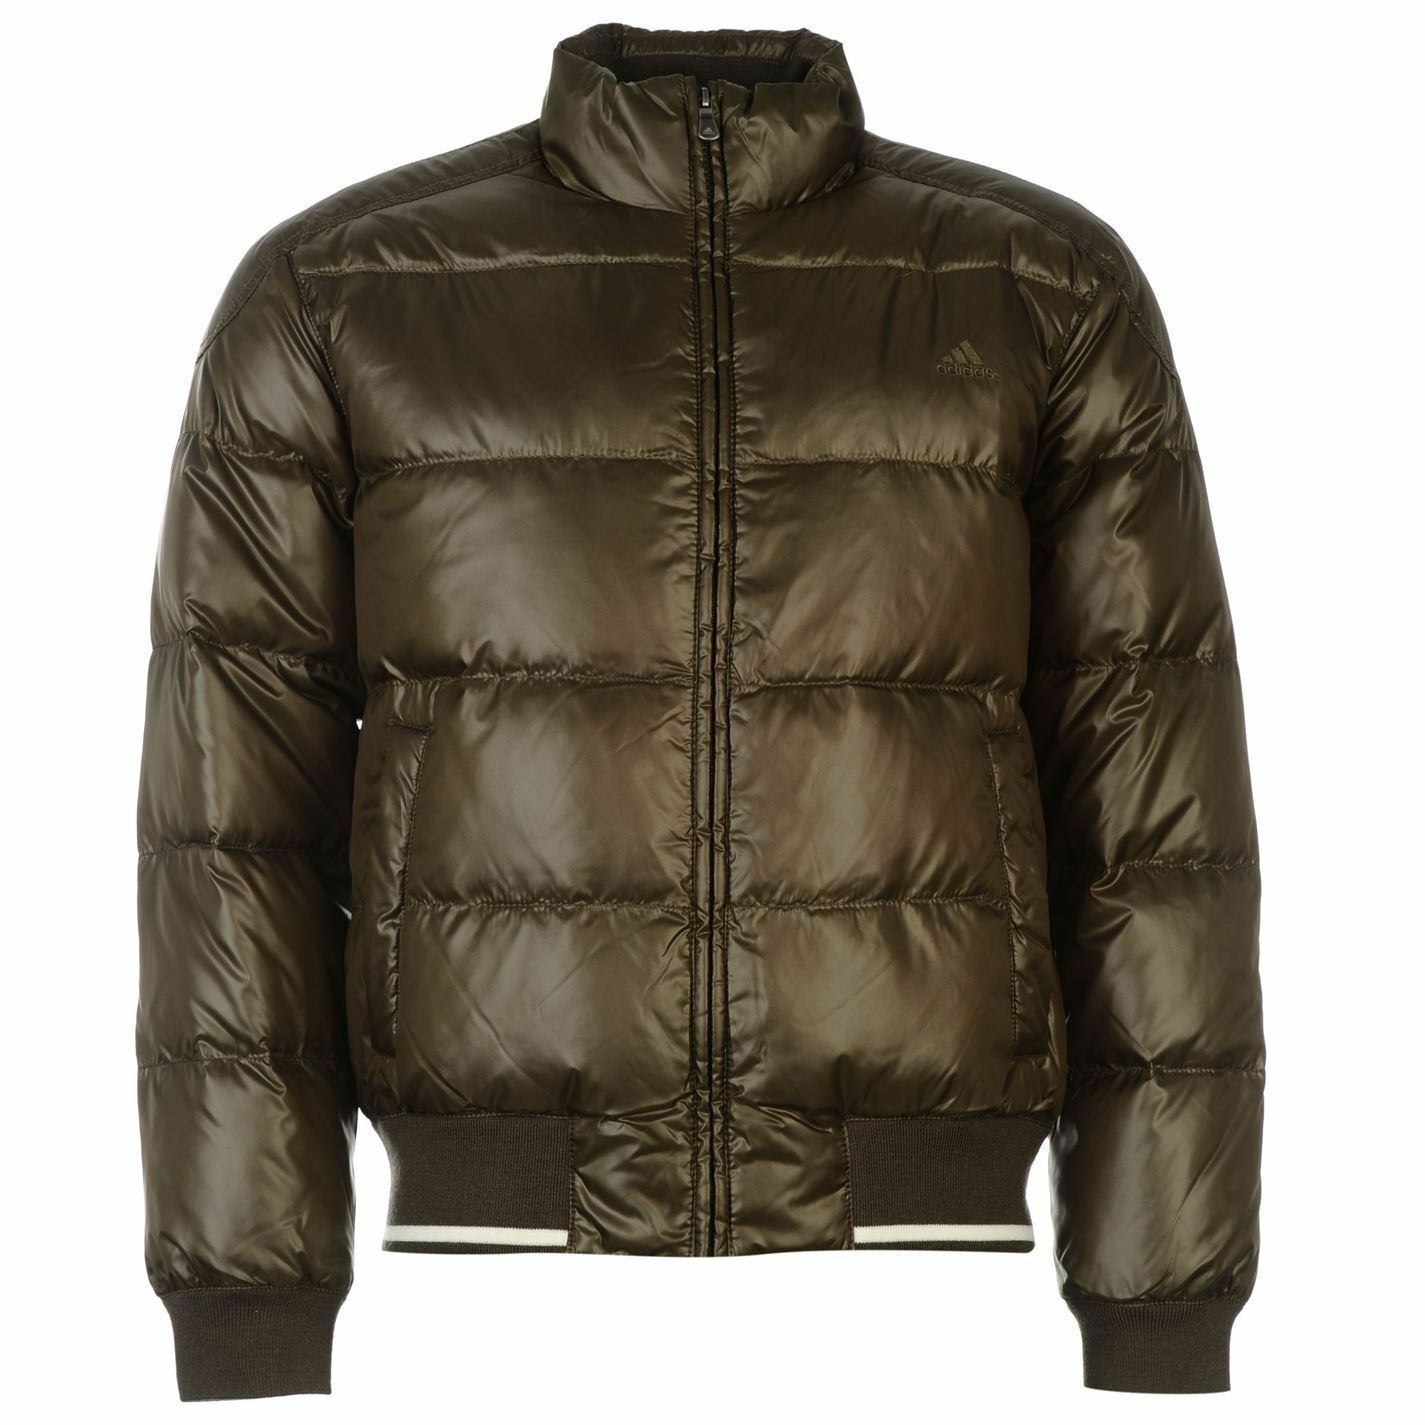 adidas Men's Coats and Jackets for sale | eBay